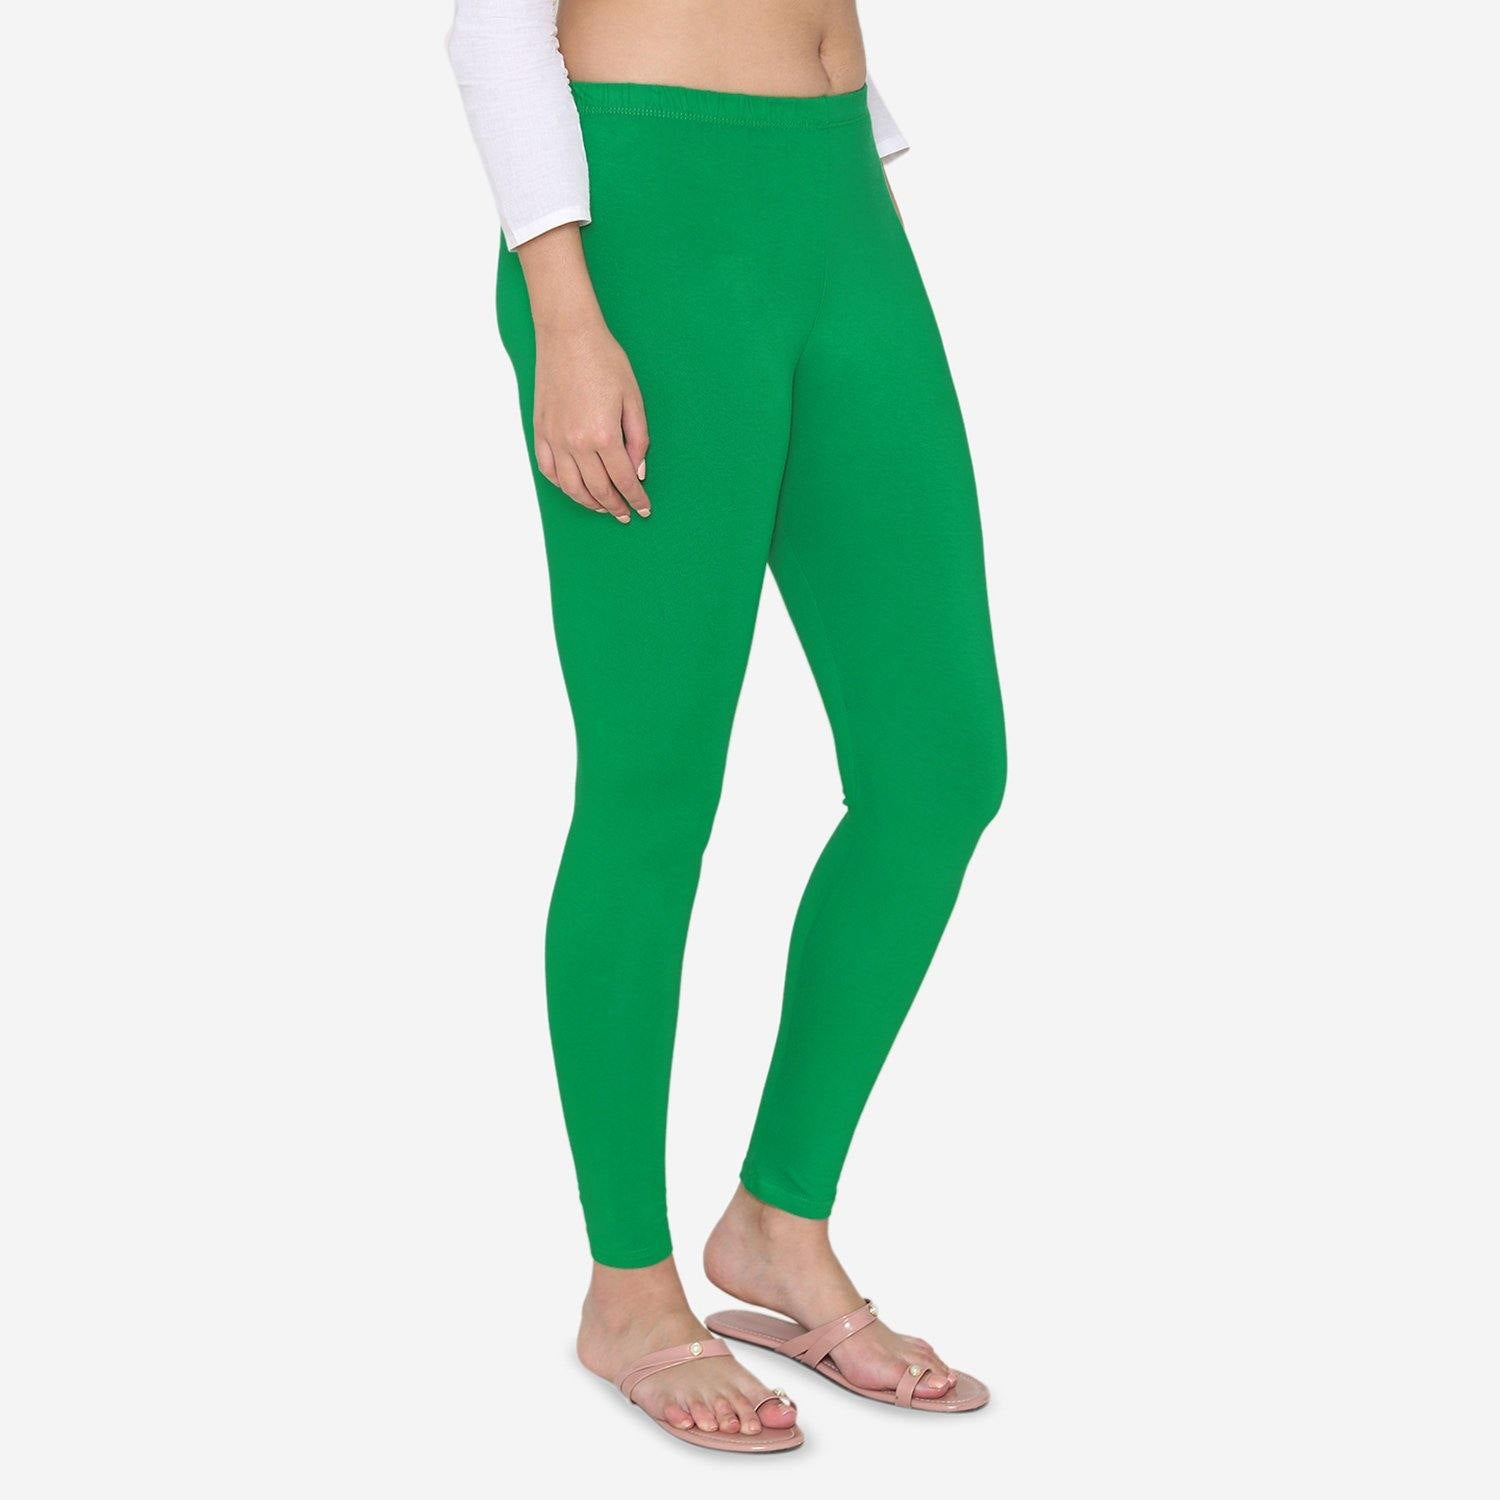 Vami Women's Cotton Stretchable Ankle Leggings - Pepper Green